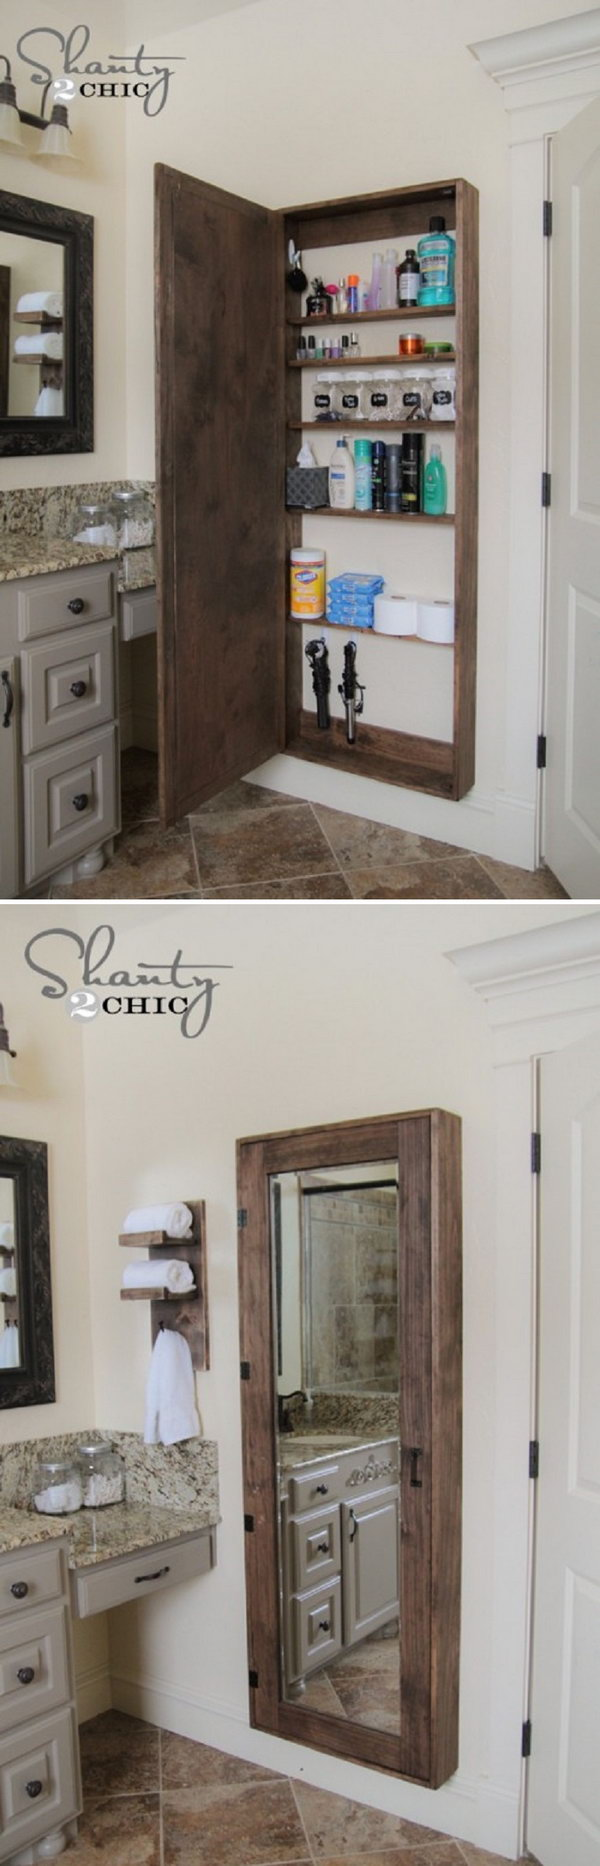 A big bathroom storage case behind the mirror to hold all the goodies.